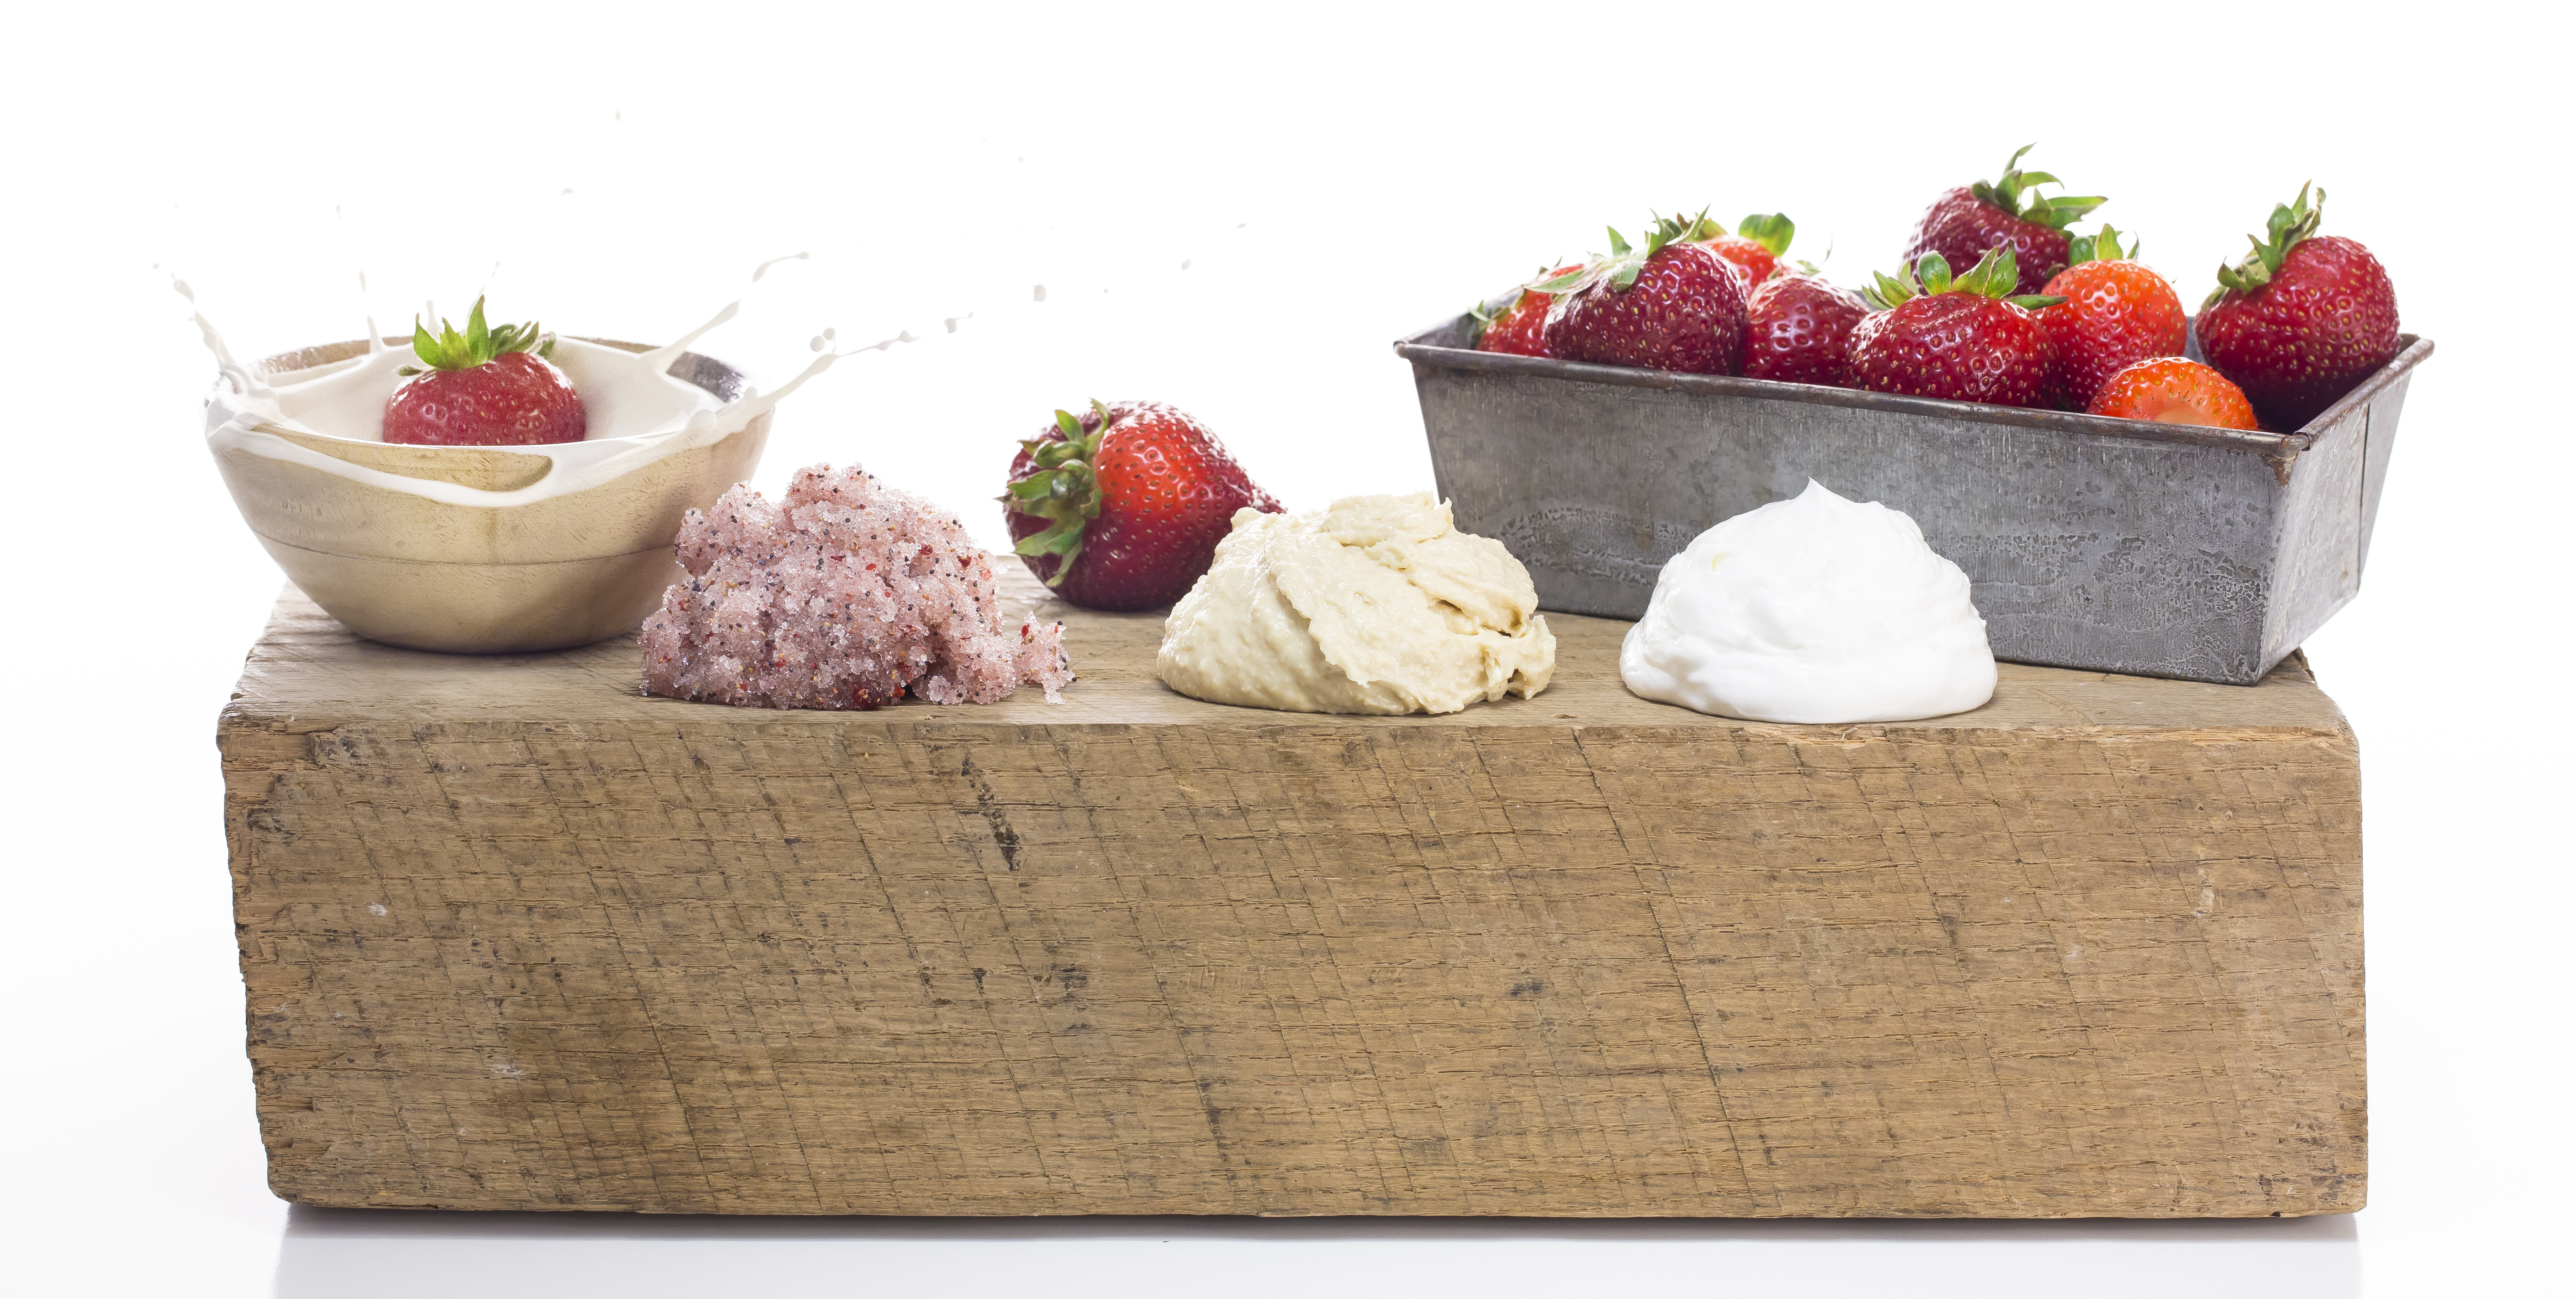 Strawberries & Cream Body Immersion - Makes Scents Natural Spa Line